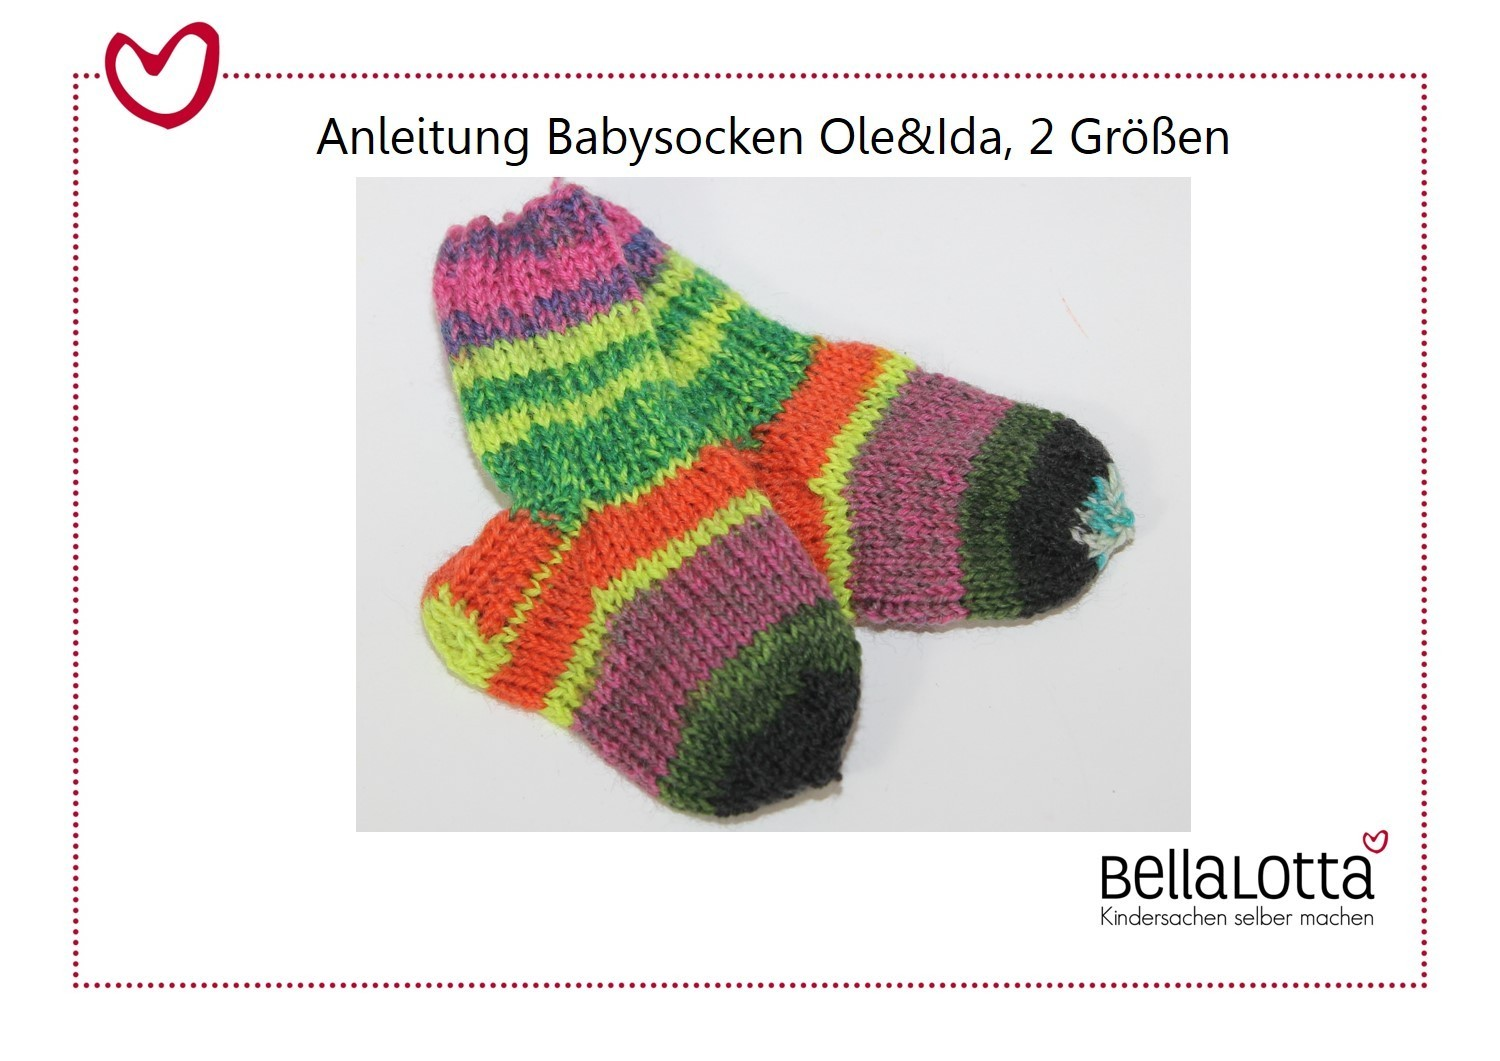 anleitung stricken socken babysocken anleitung. Black Bedroom Furniture Sets. Home Design Ideas